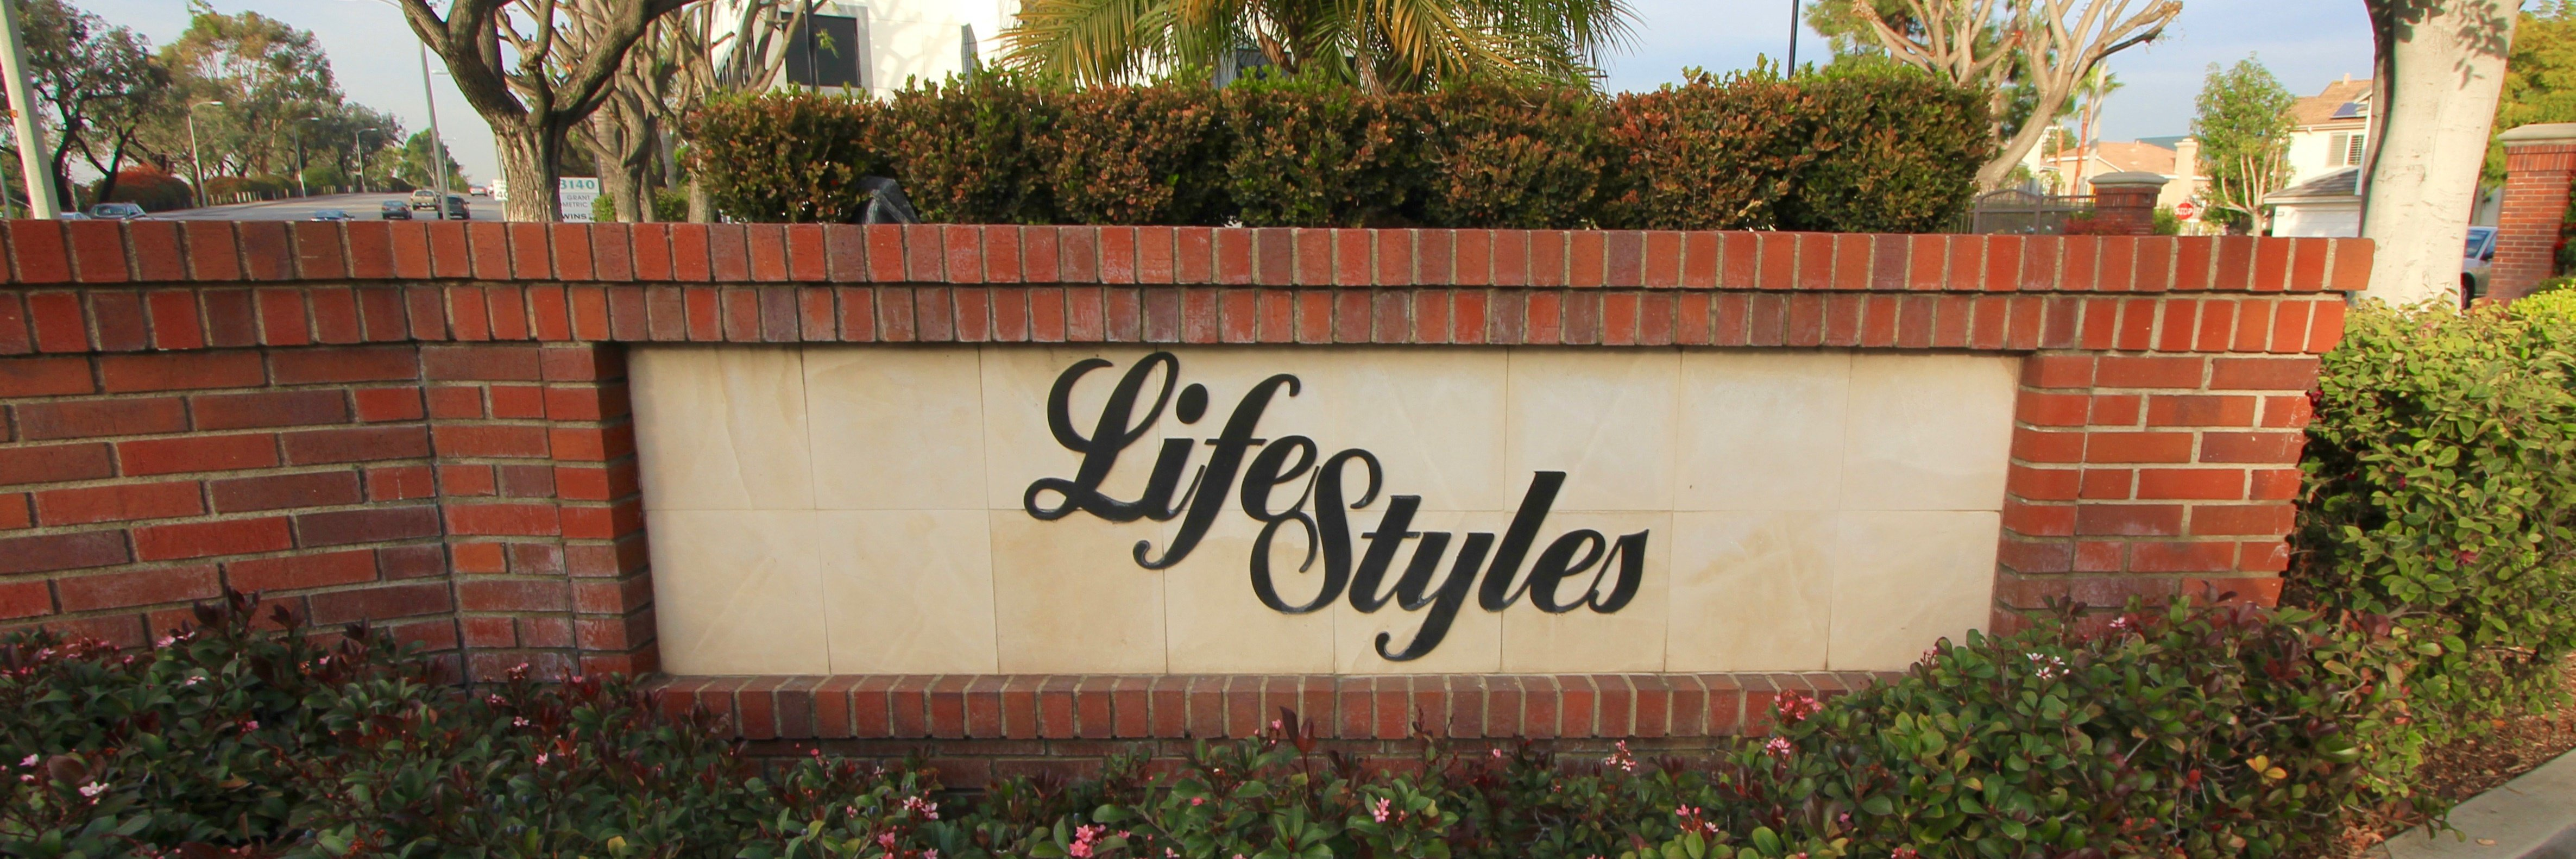 Lifestyles is a community located in the city of Costa Mesa CA